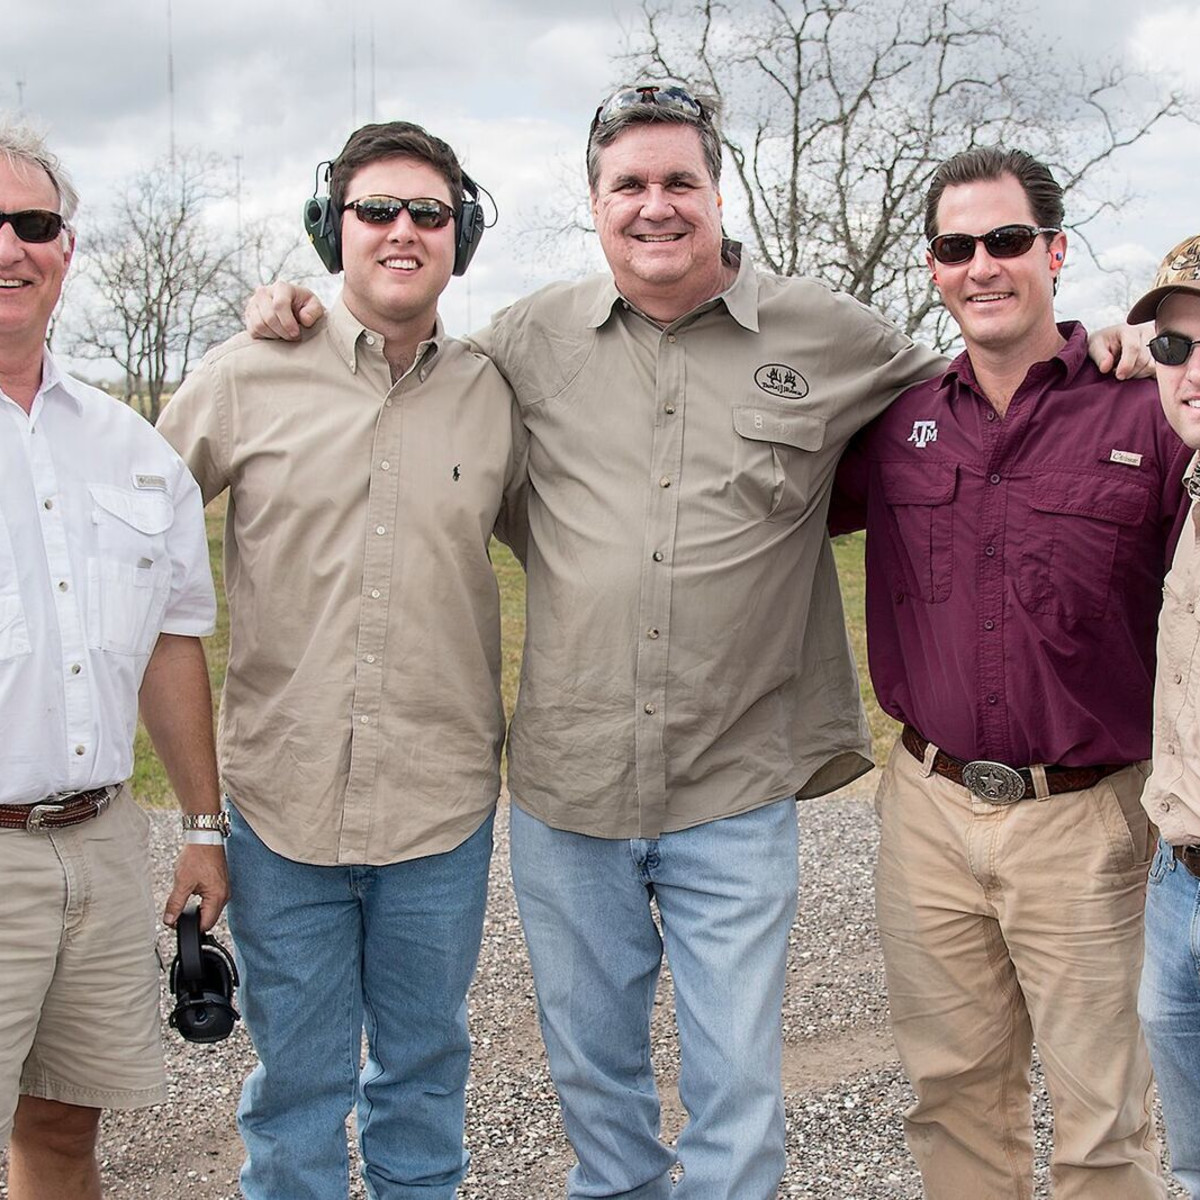 Trey Strake, G Strake, Perry Hicks, Lucian Bukowski, Jason Johnson at Memorial Hermann Clay Shoot